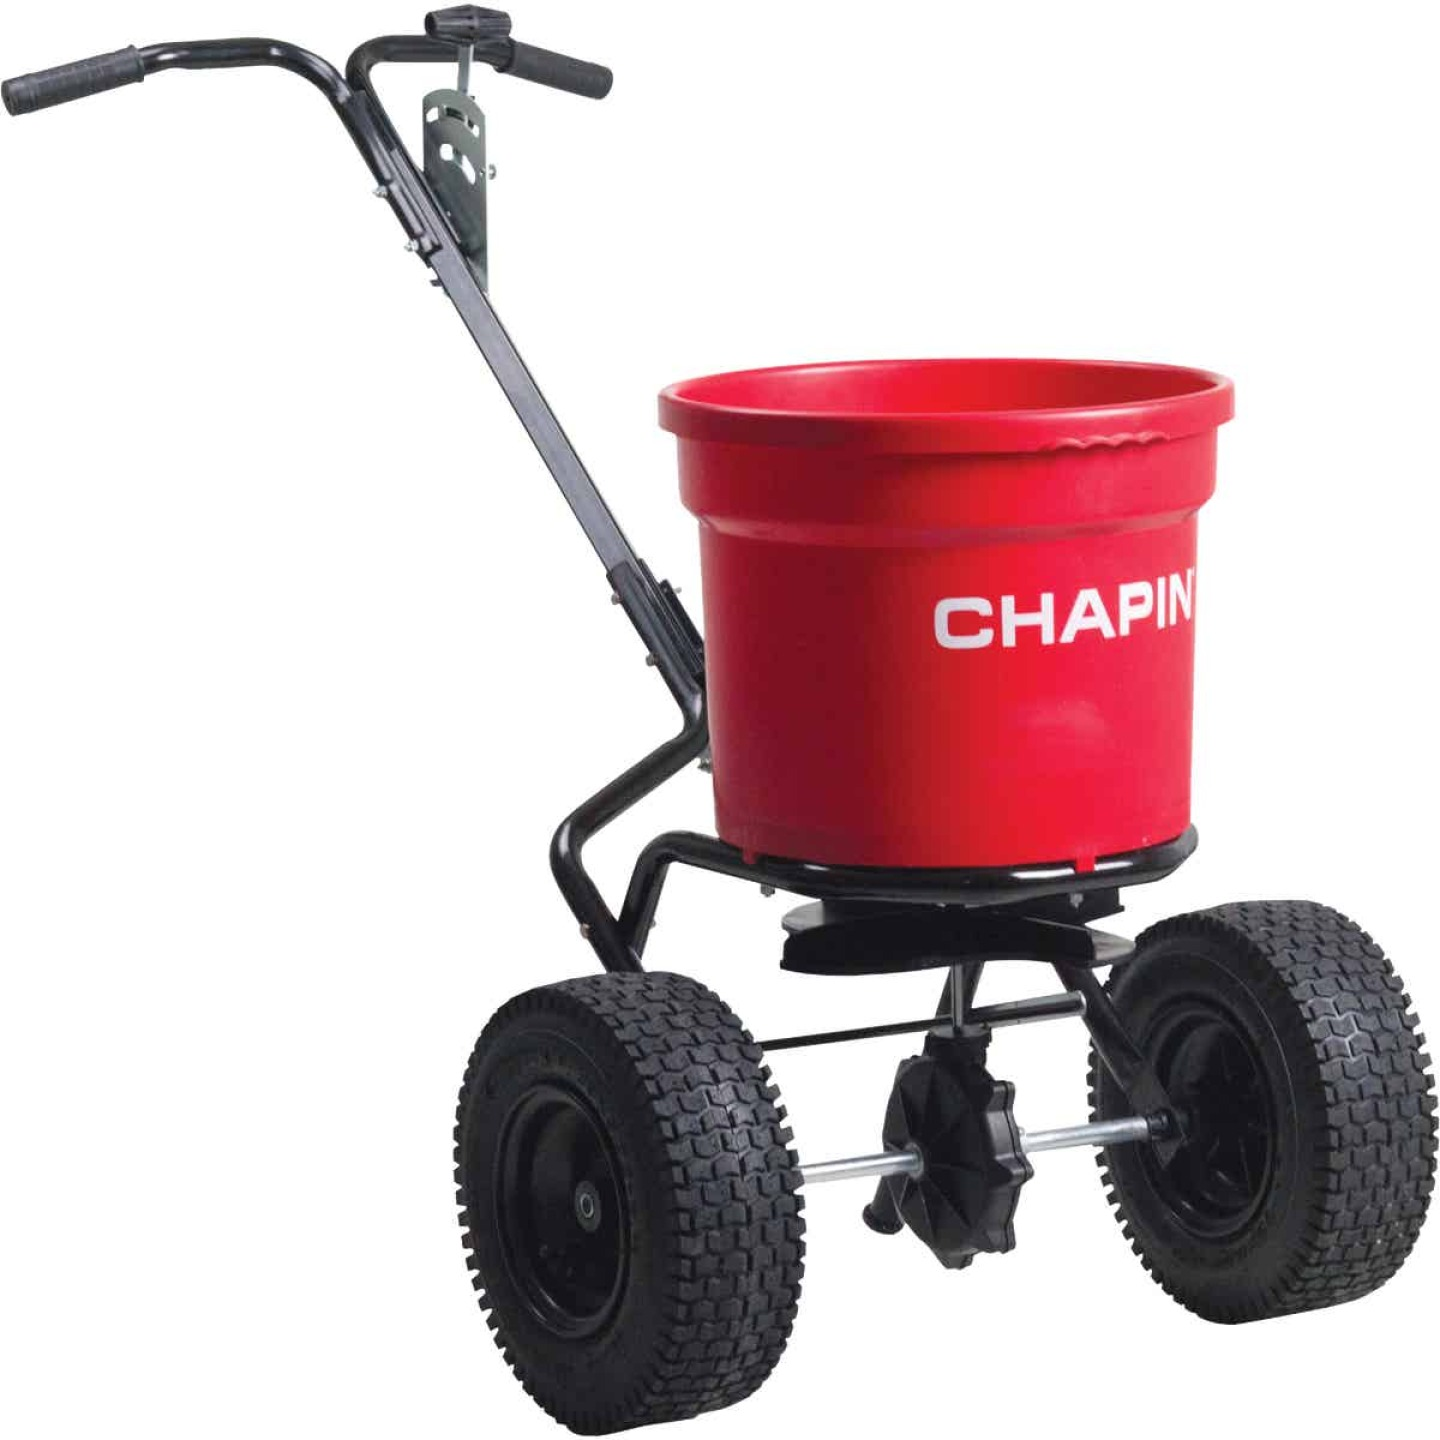 Chapin 70 Lb. Contractor Broadcast Spreader Image 1